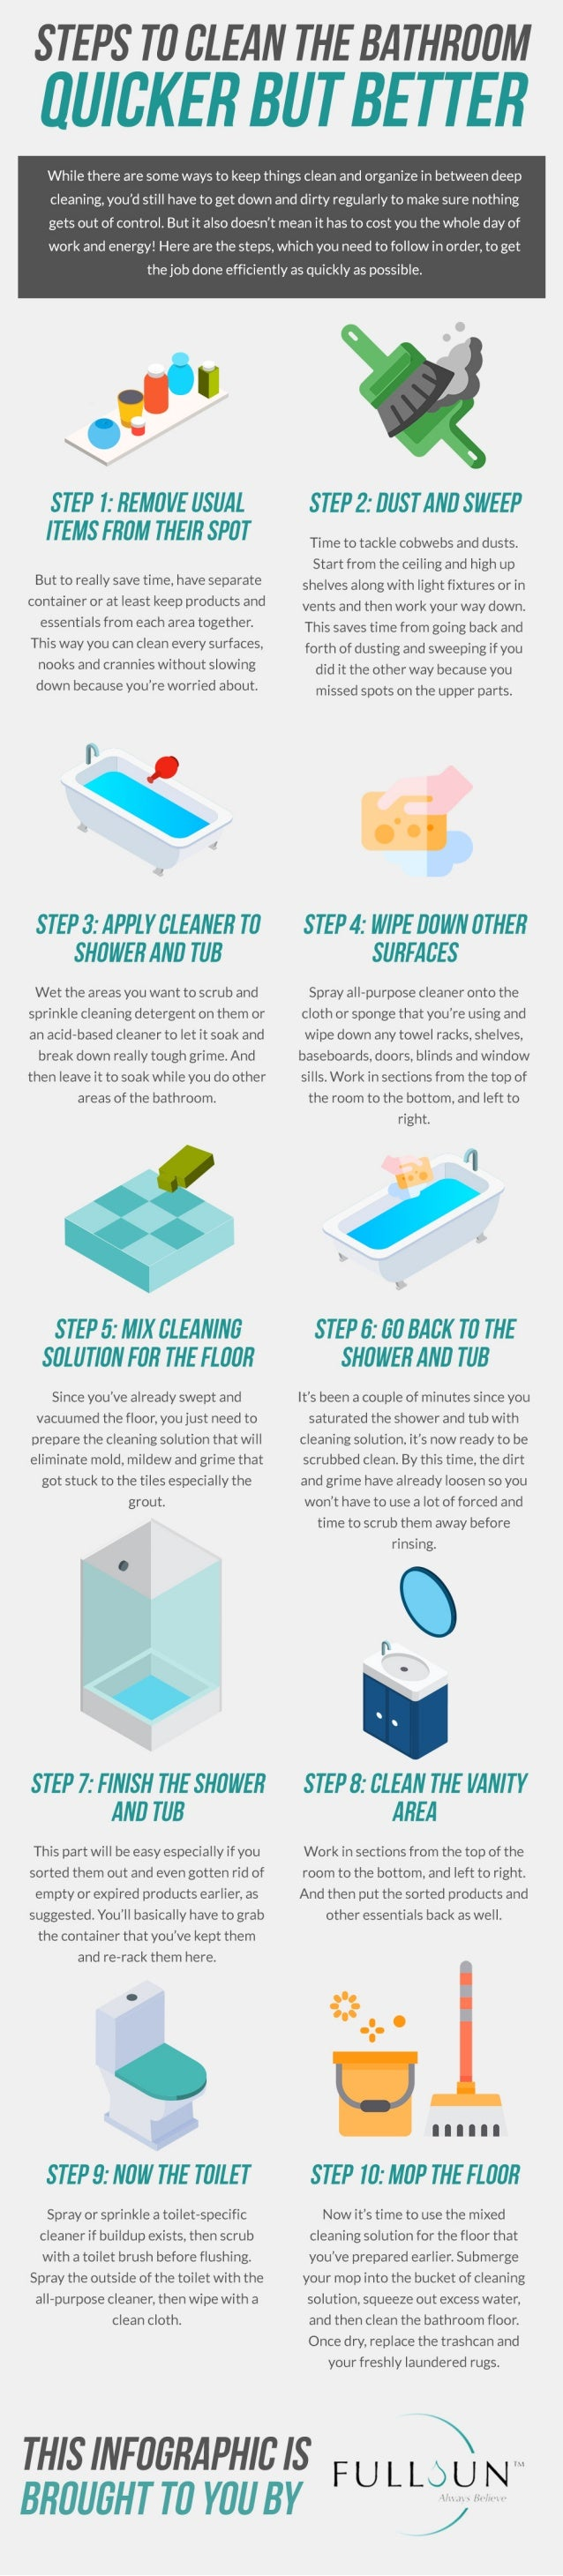 Steps To Clean The Bathroom Quicker But Better